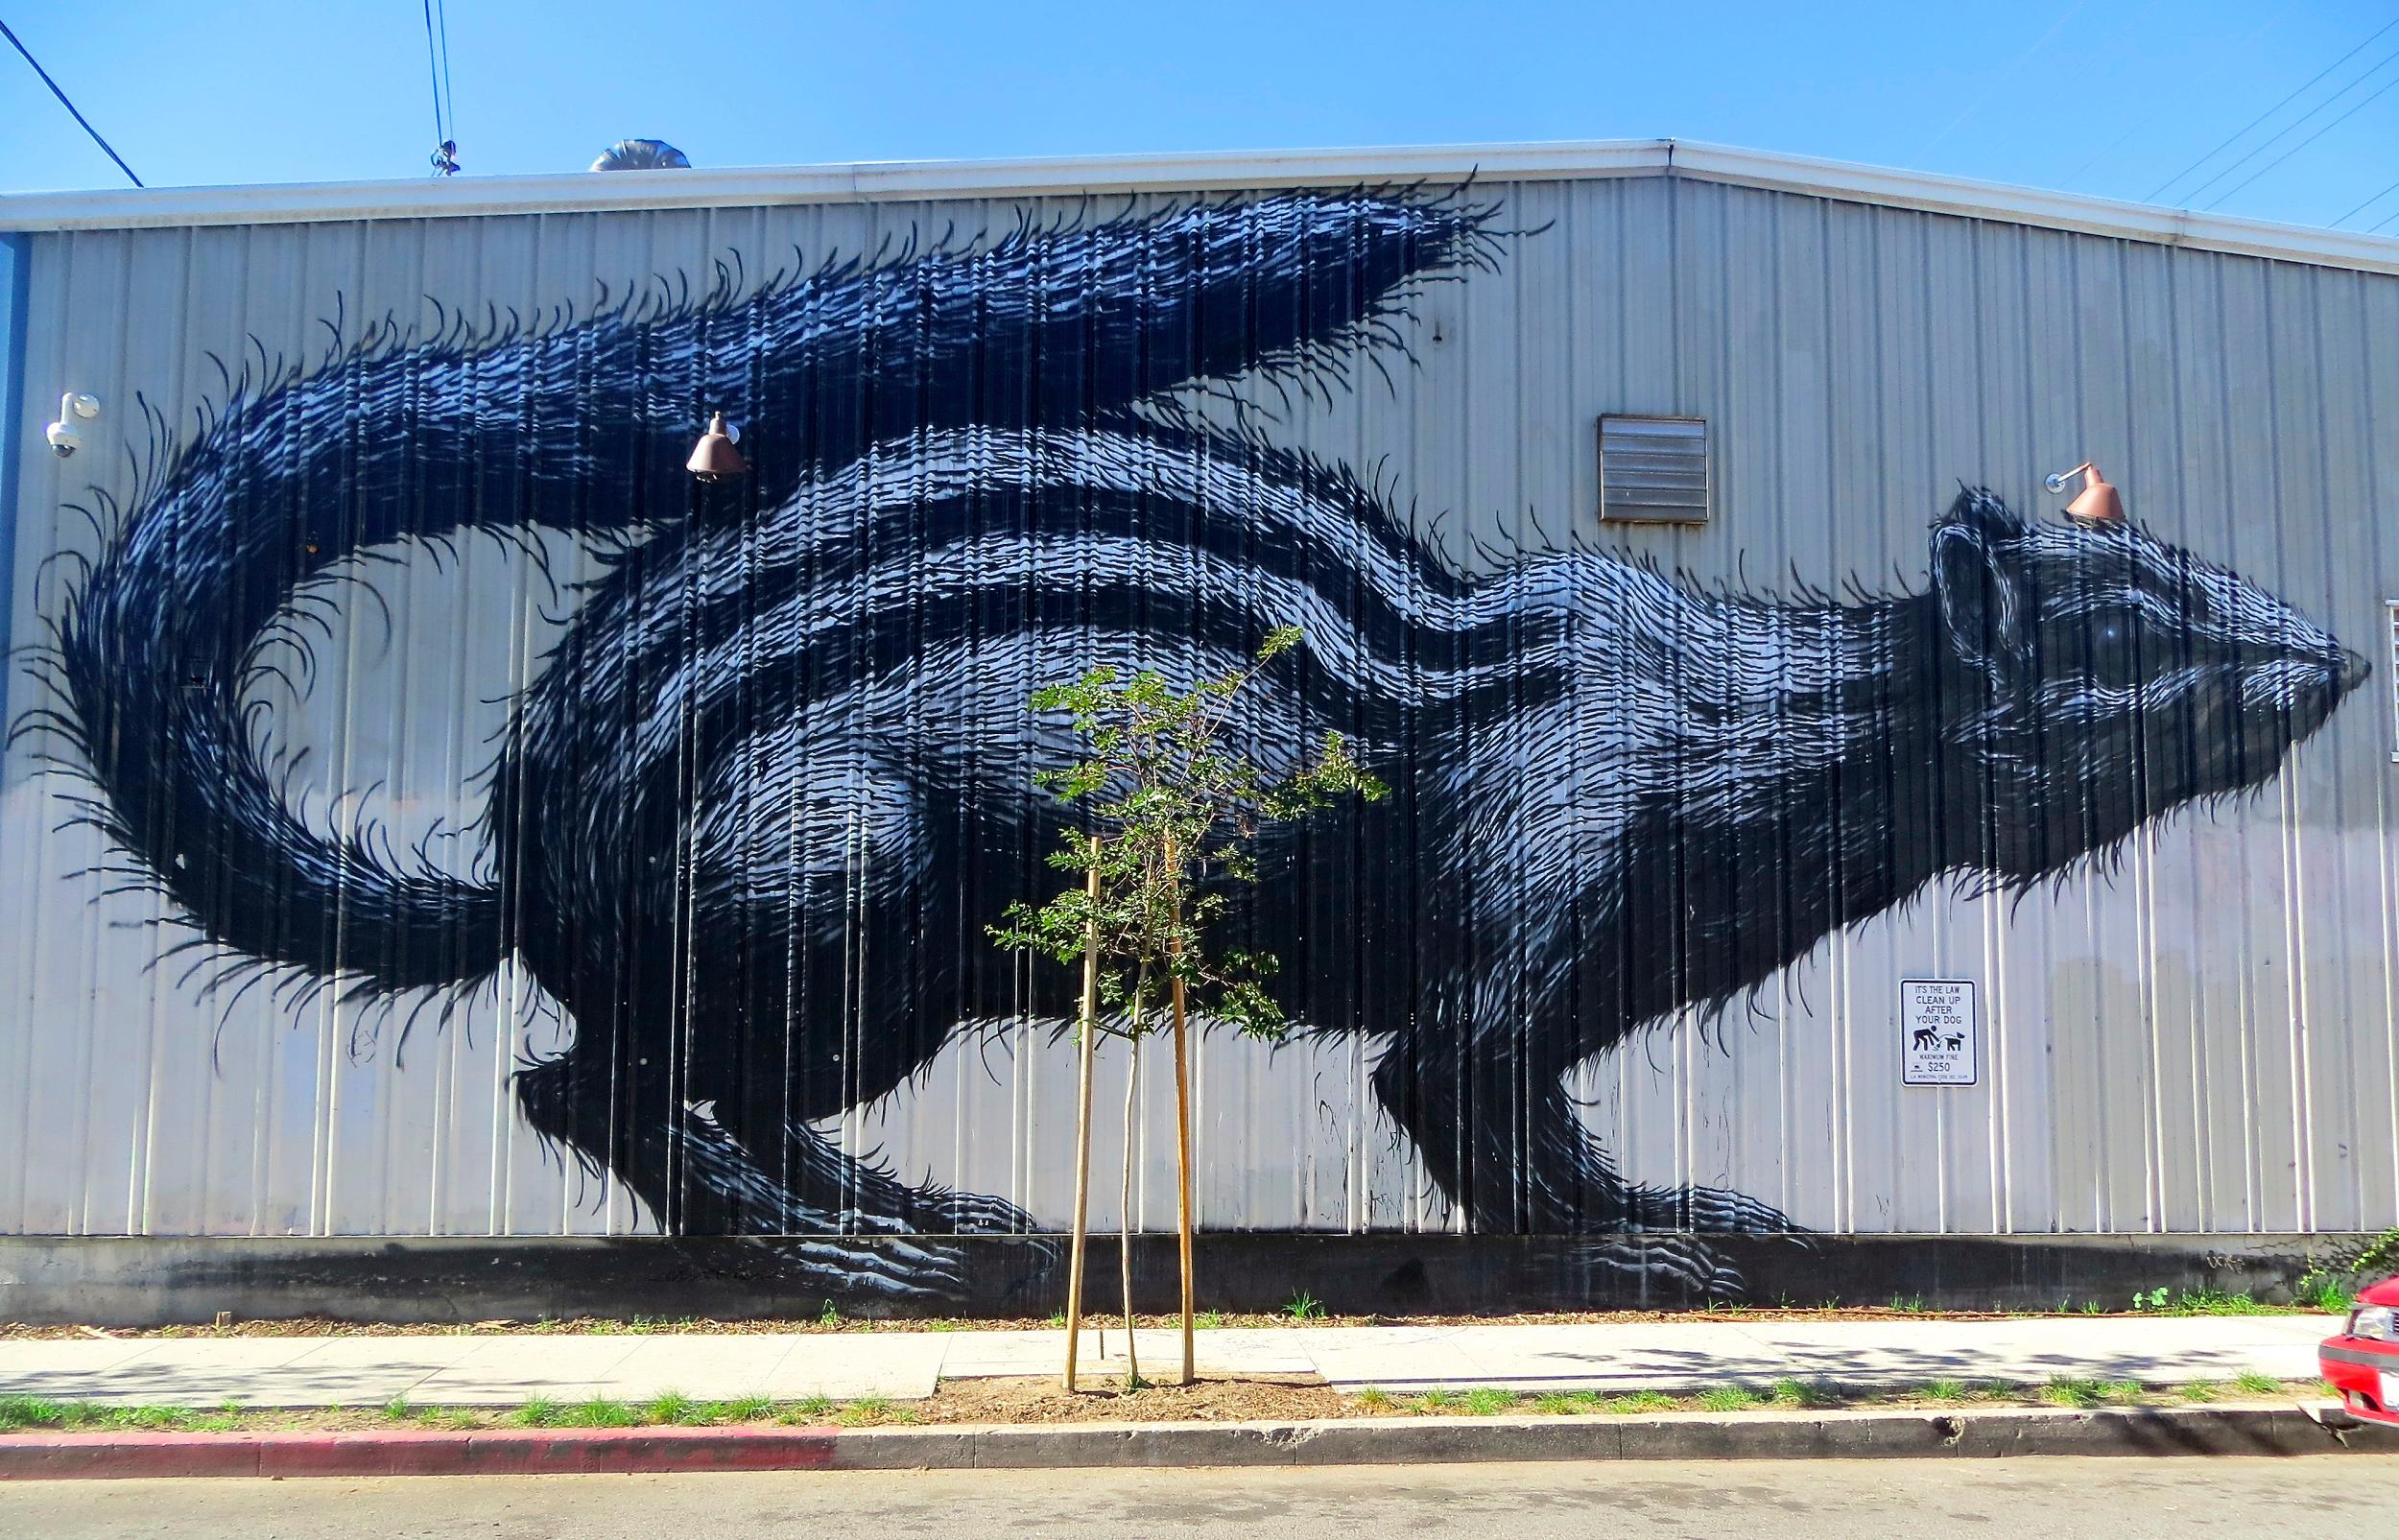 One of the countless urban works of art in the Arts District; Photo Credit: Cindy Schwartzstein